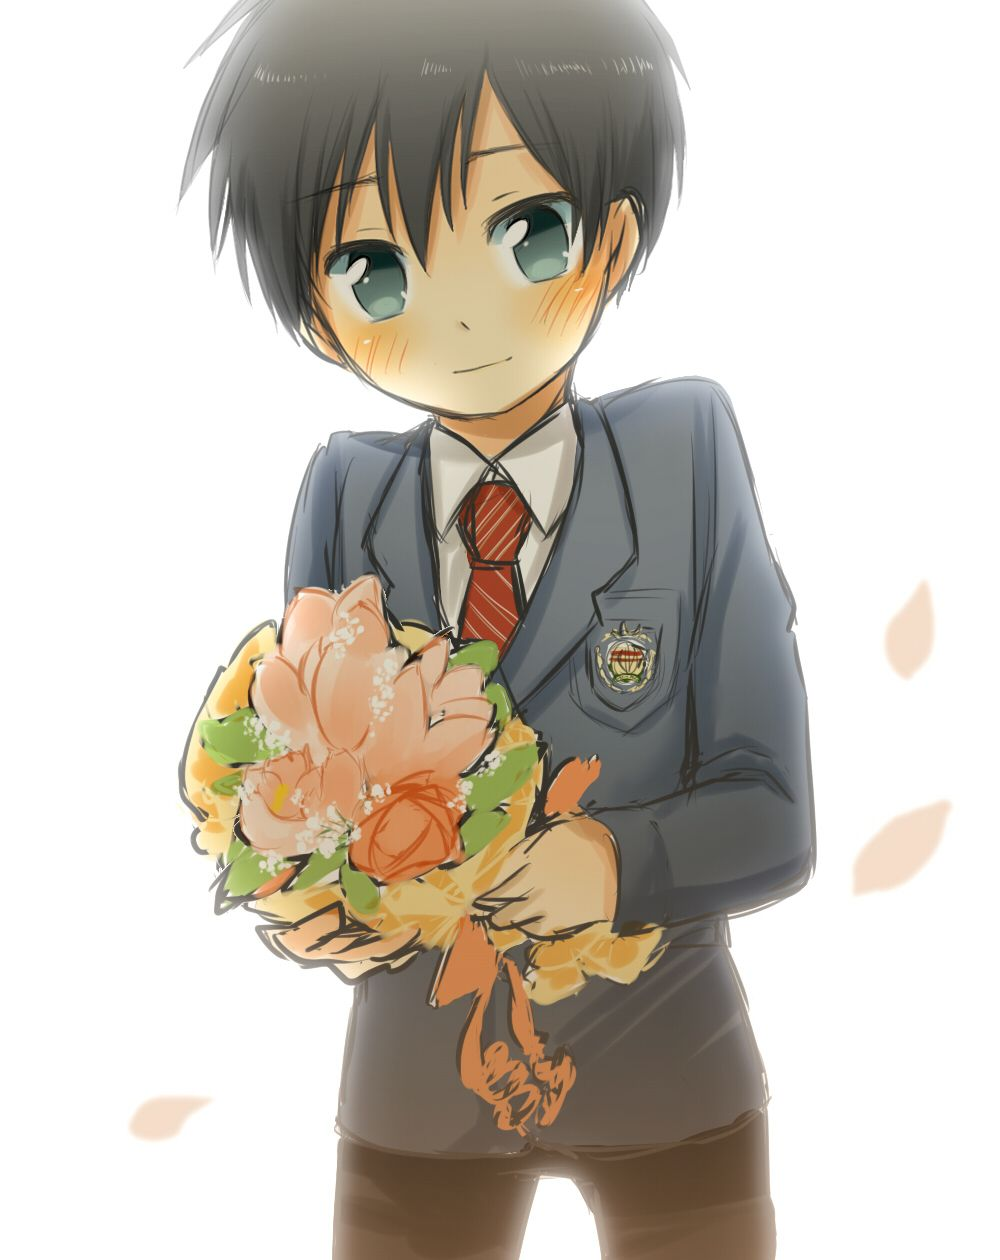 shota boy 3d anime School Boy with flowers